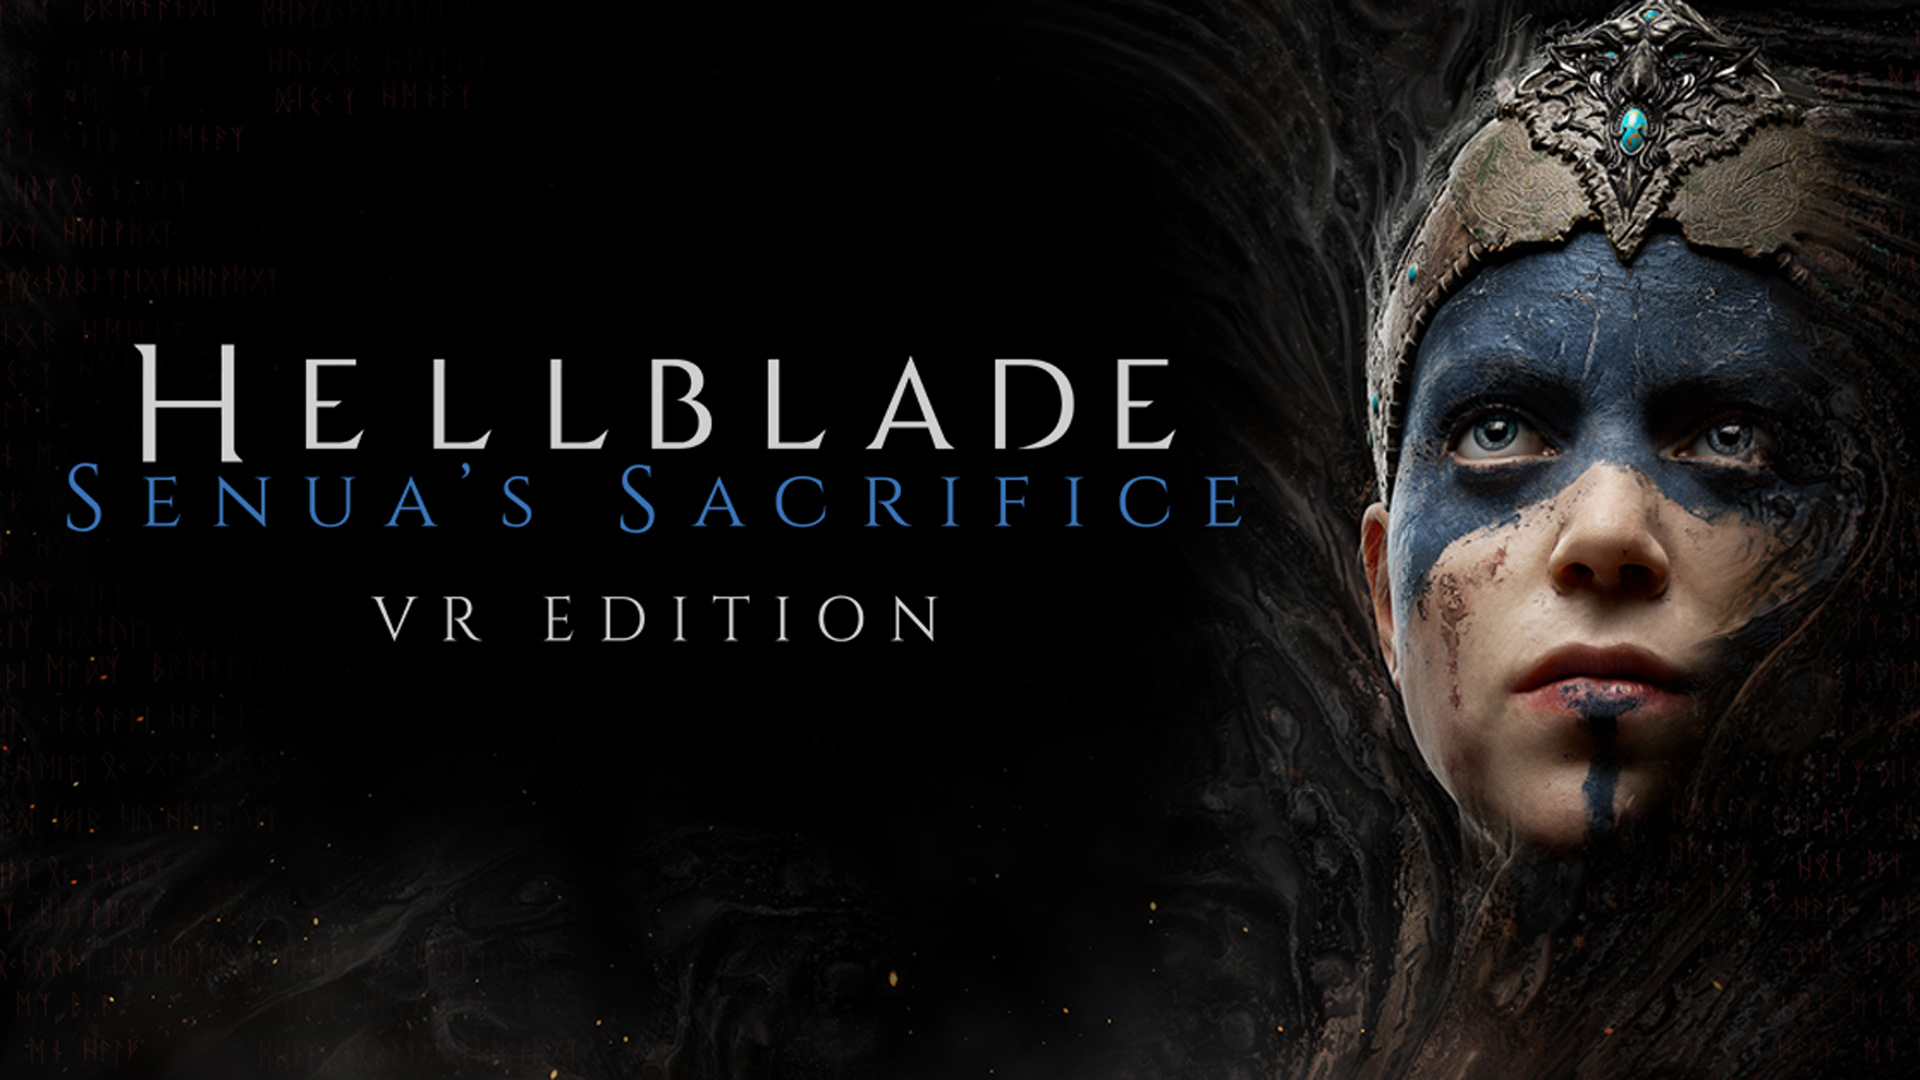 Hellblade: Senua's Sacrifice VR will be Releasing at the end of this Month